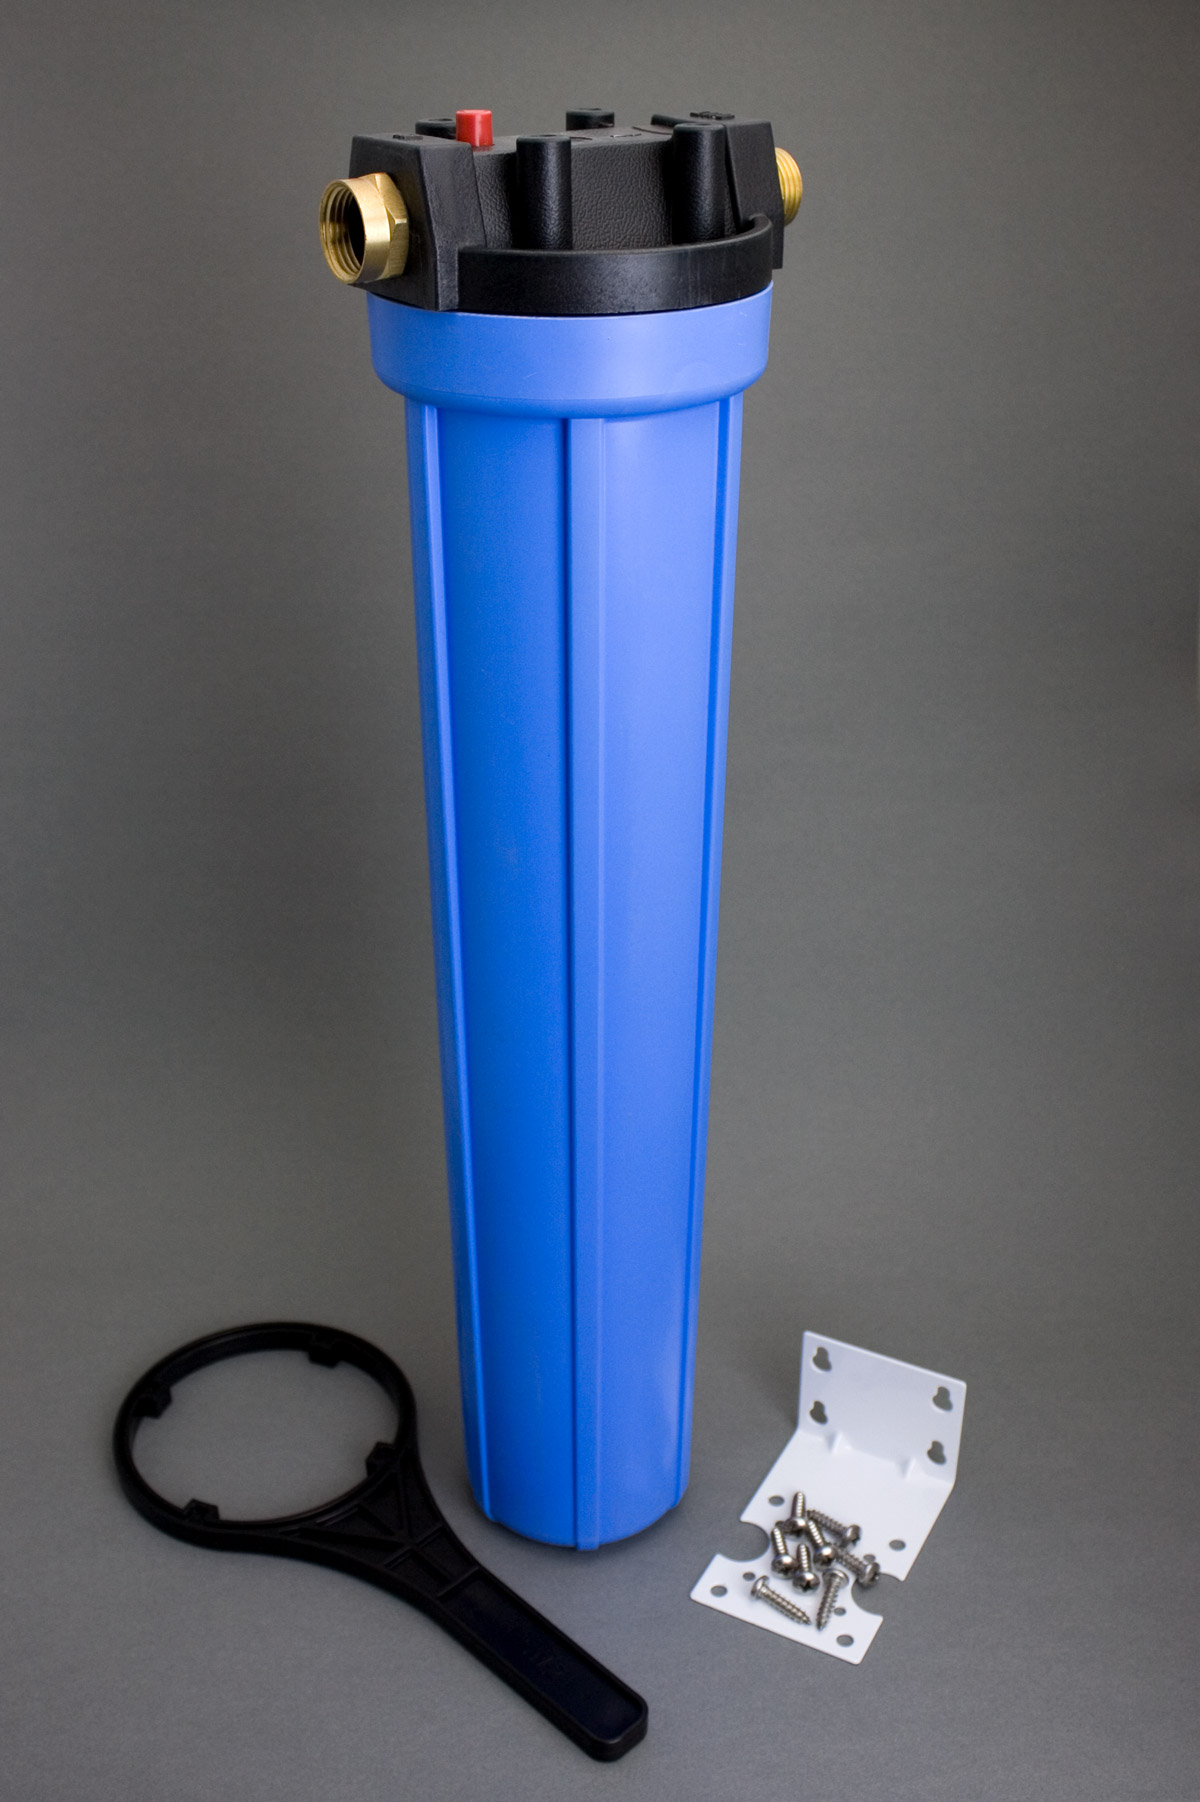 Garden Hose Filter For 2.5 X 20 Inch Cartridges